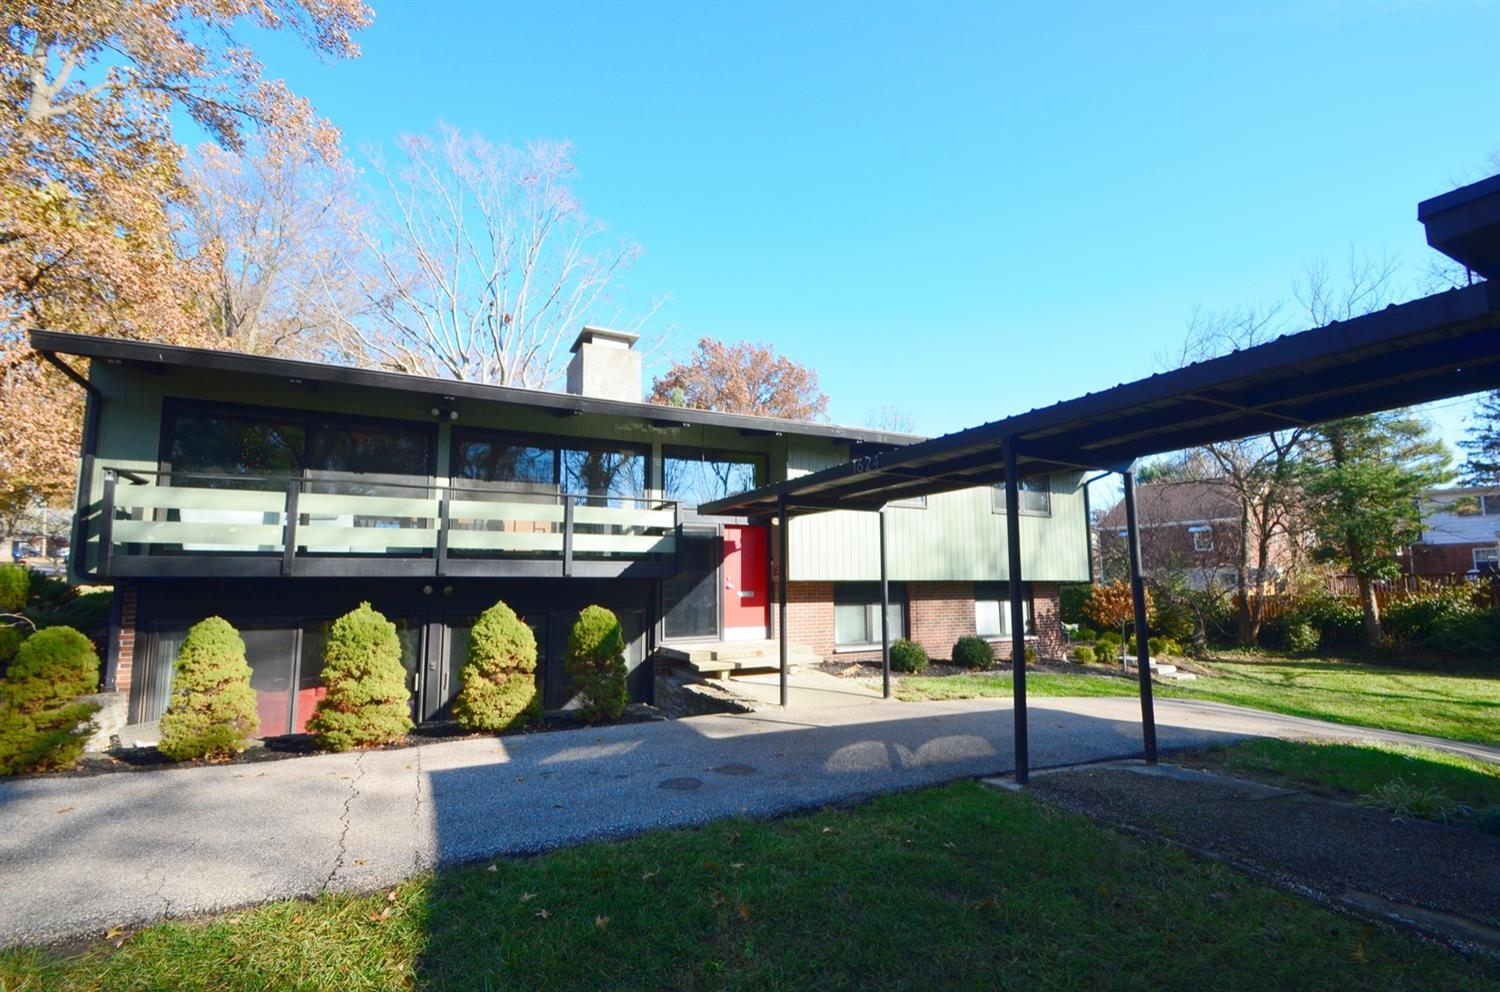 This two level home is unique in that it has a detached 2 car *heated* garage with two bonus rooms on the second floor and a covered walkway to the house.